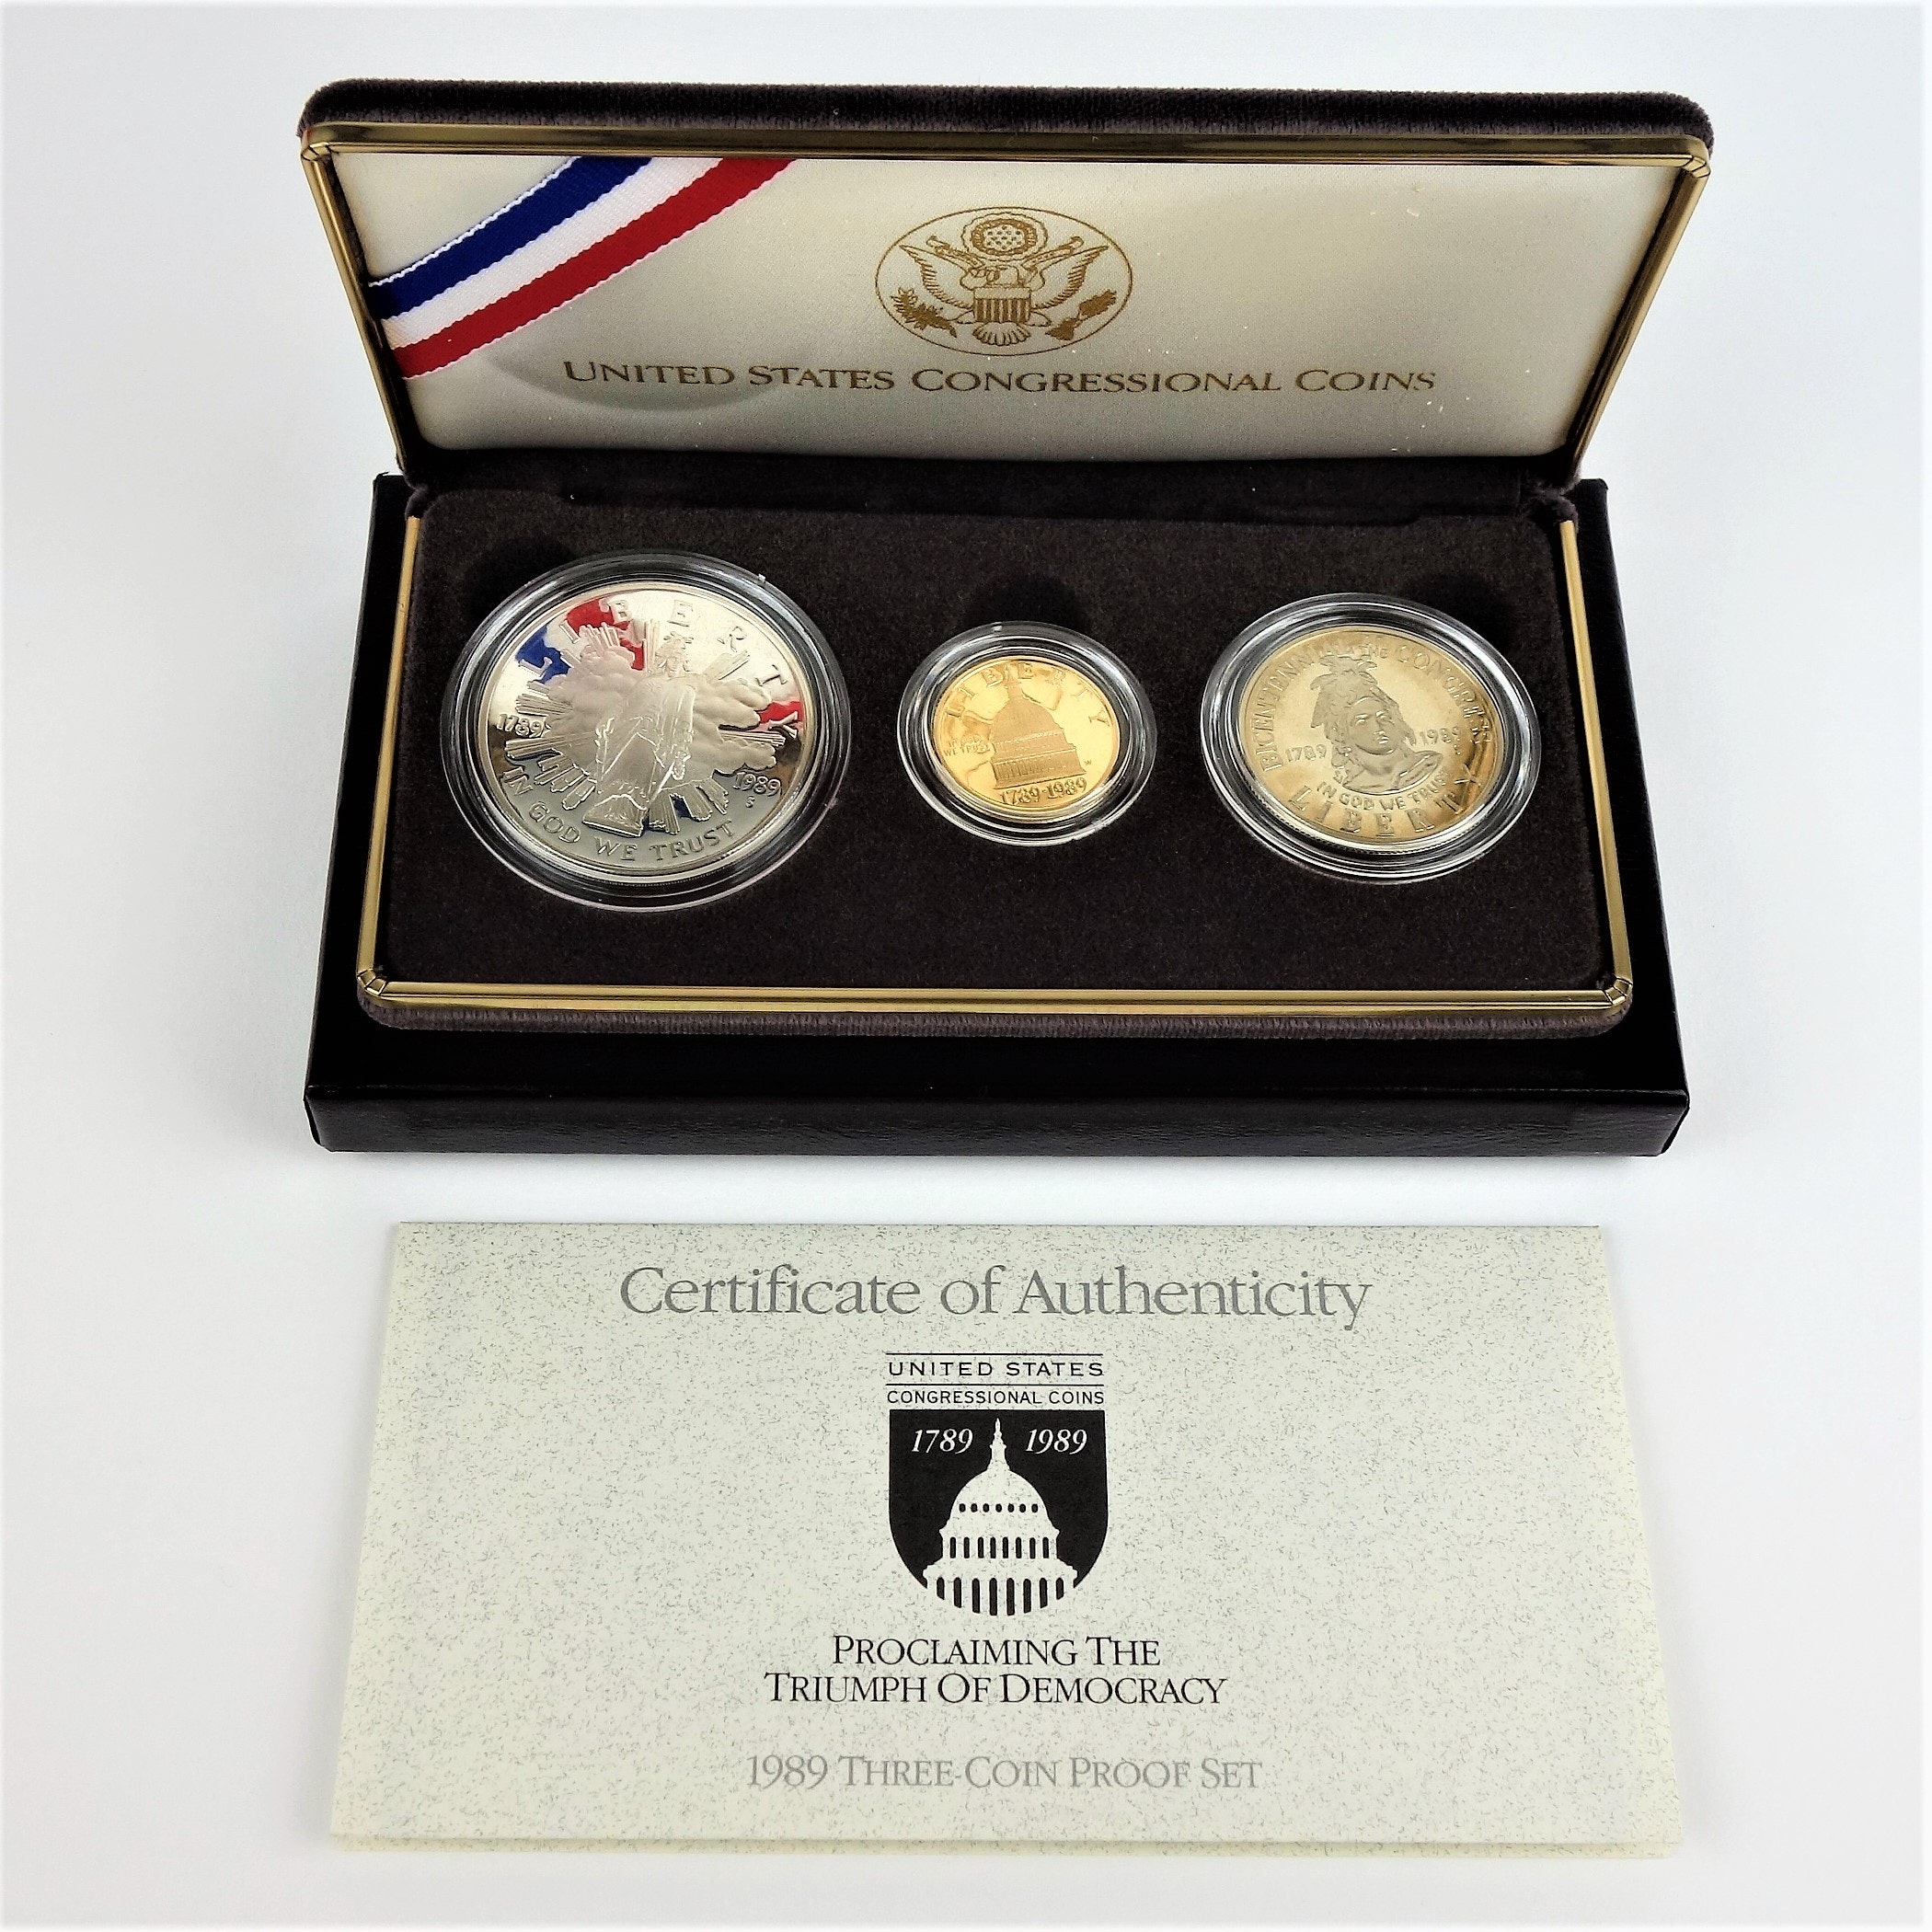 1989 US Congressional Coin Set $5 Gold, Silver $1 and Half Dollar